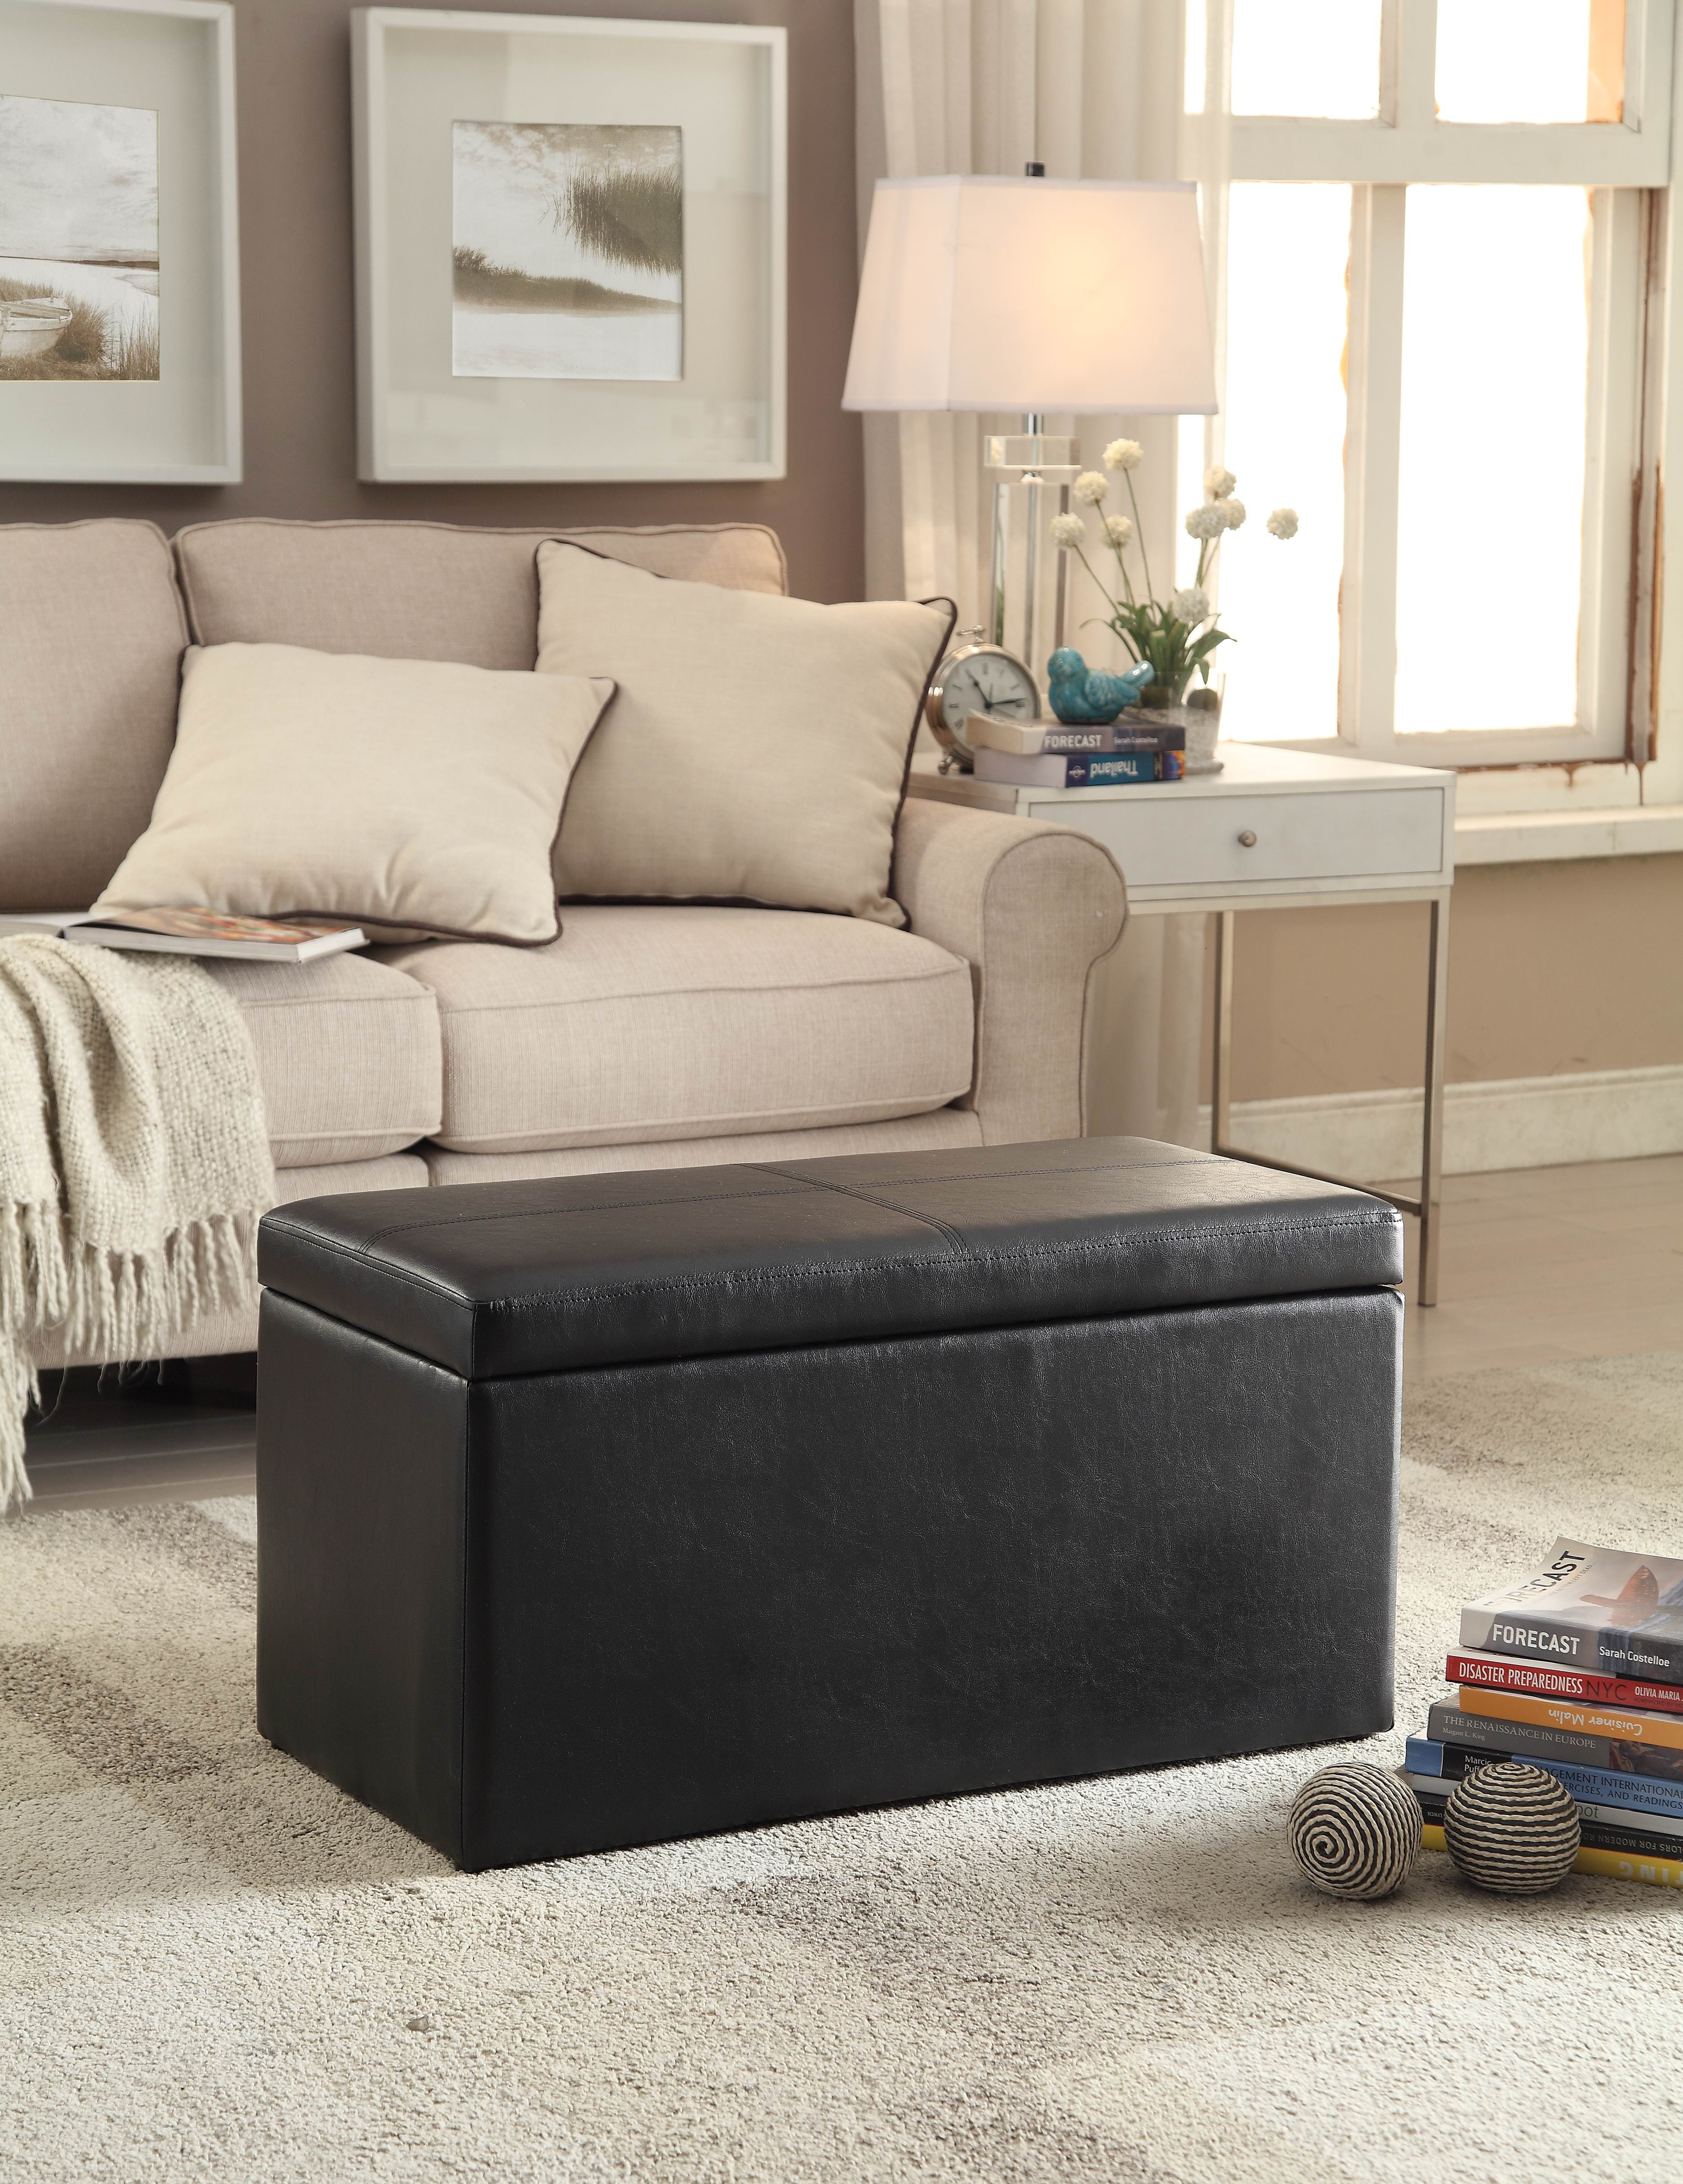 Phenomenal Better Homes Gardens 30 Inch Hinged Storage Ottoman Black Andrewgaddart Wooden Chair Designs For Living Room Andrewgaddartcom